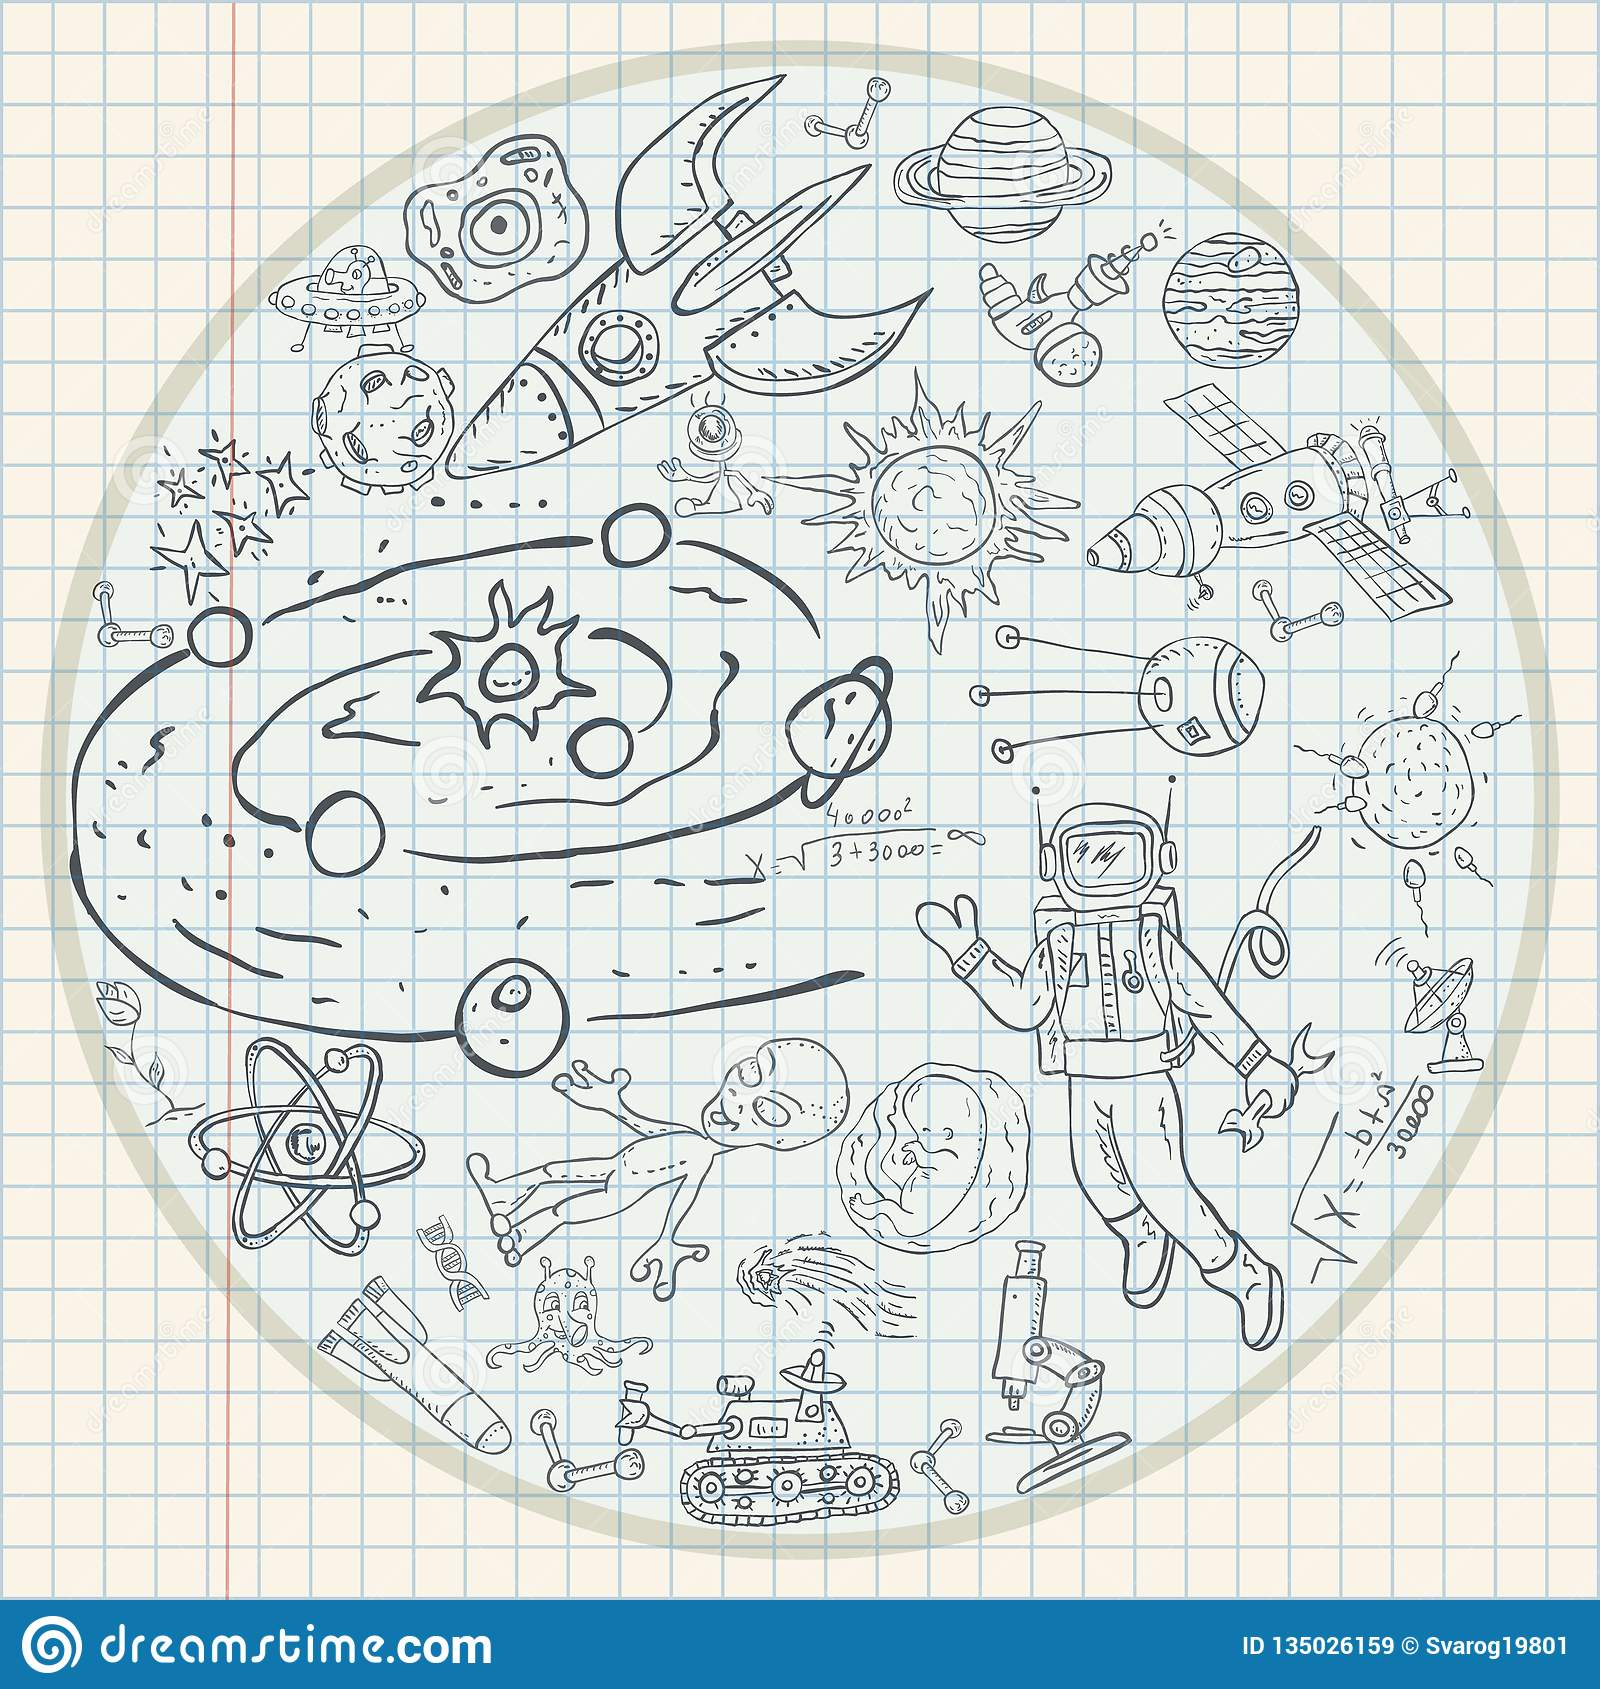 Childrens Drawings Coloring 2 Pages On Space Theme